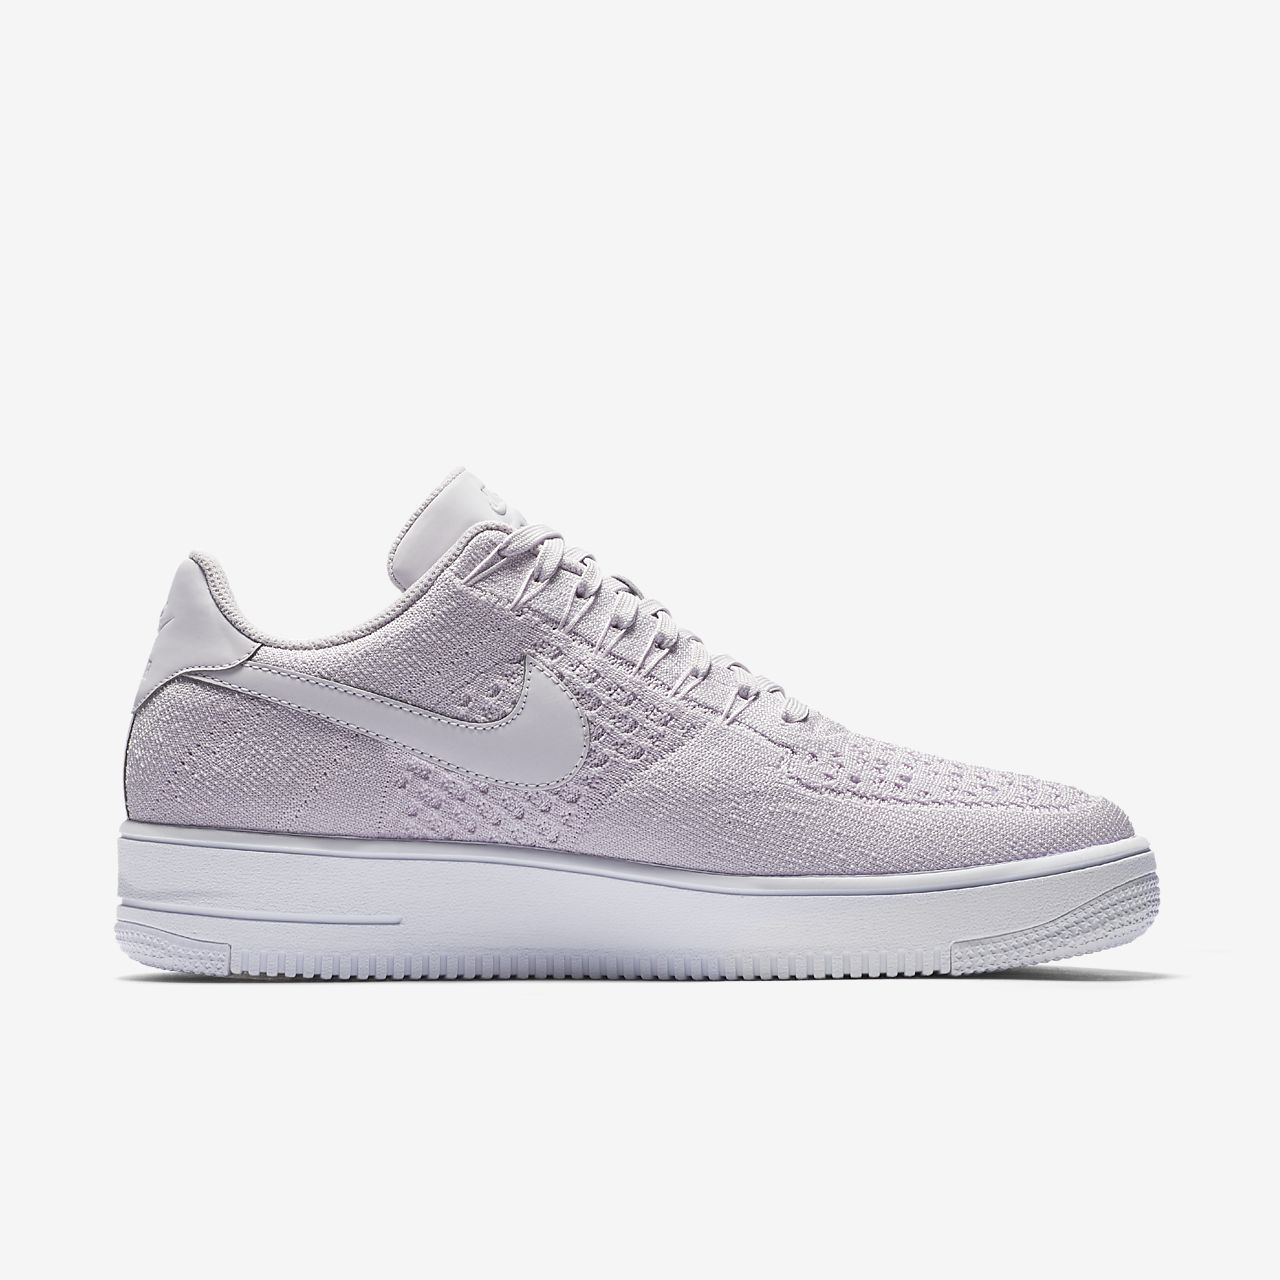 Sneakers Uomo | Nike Air Force 1 Low 07 LV8 Bianco — Claudio Gasparollo